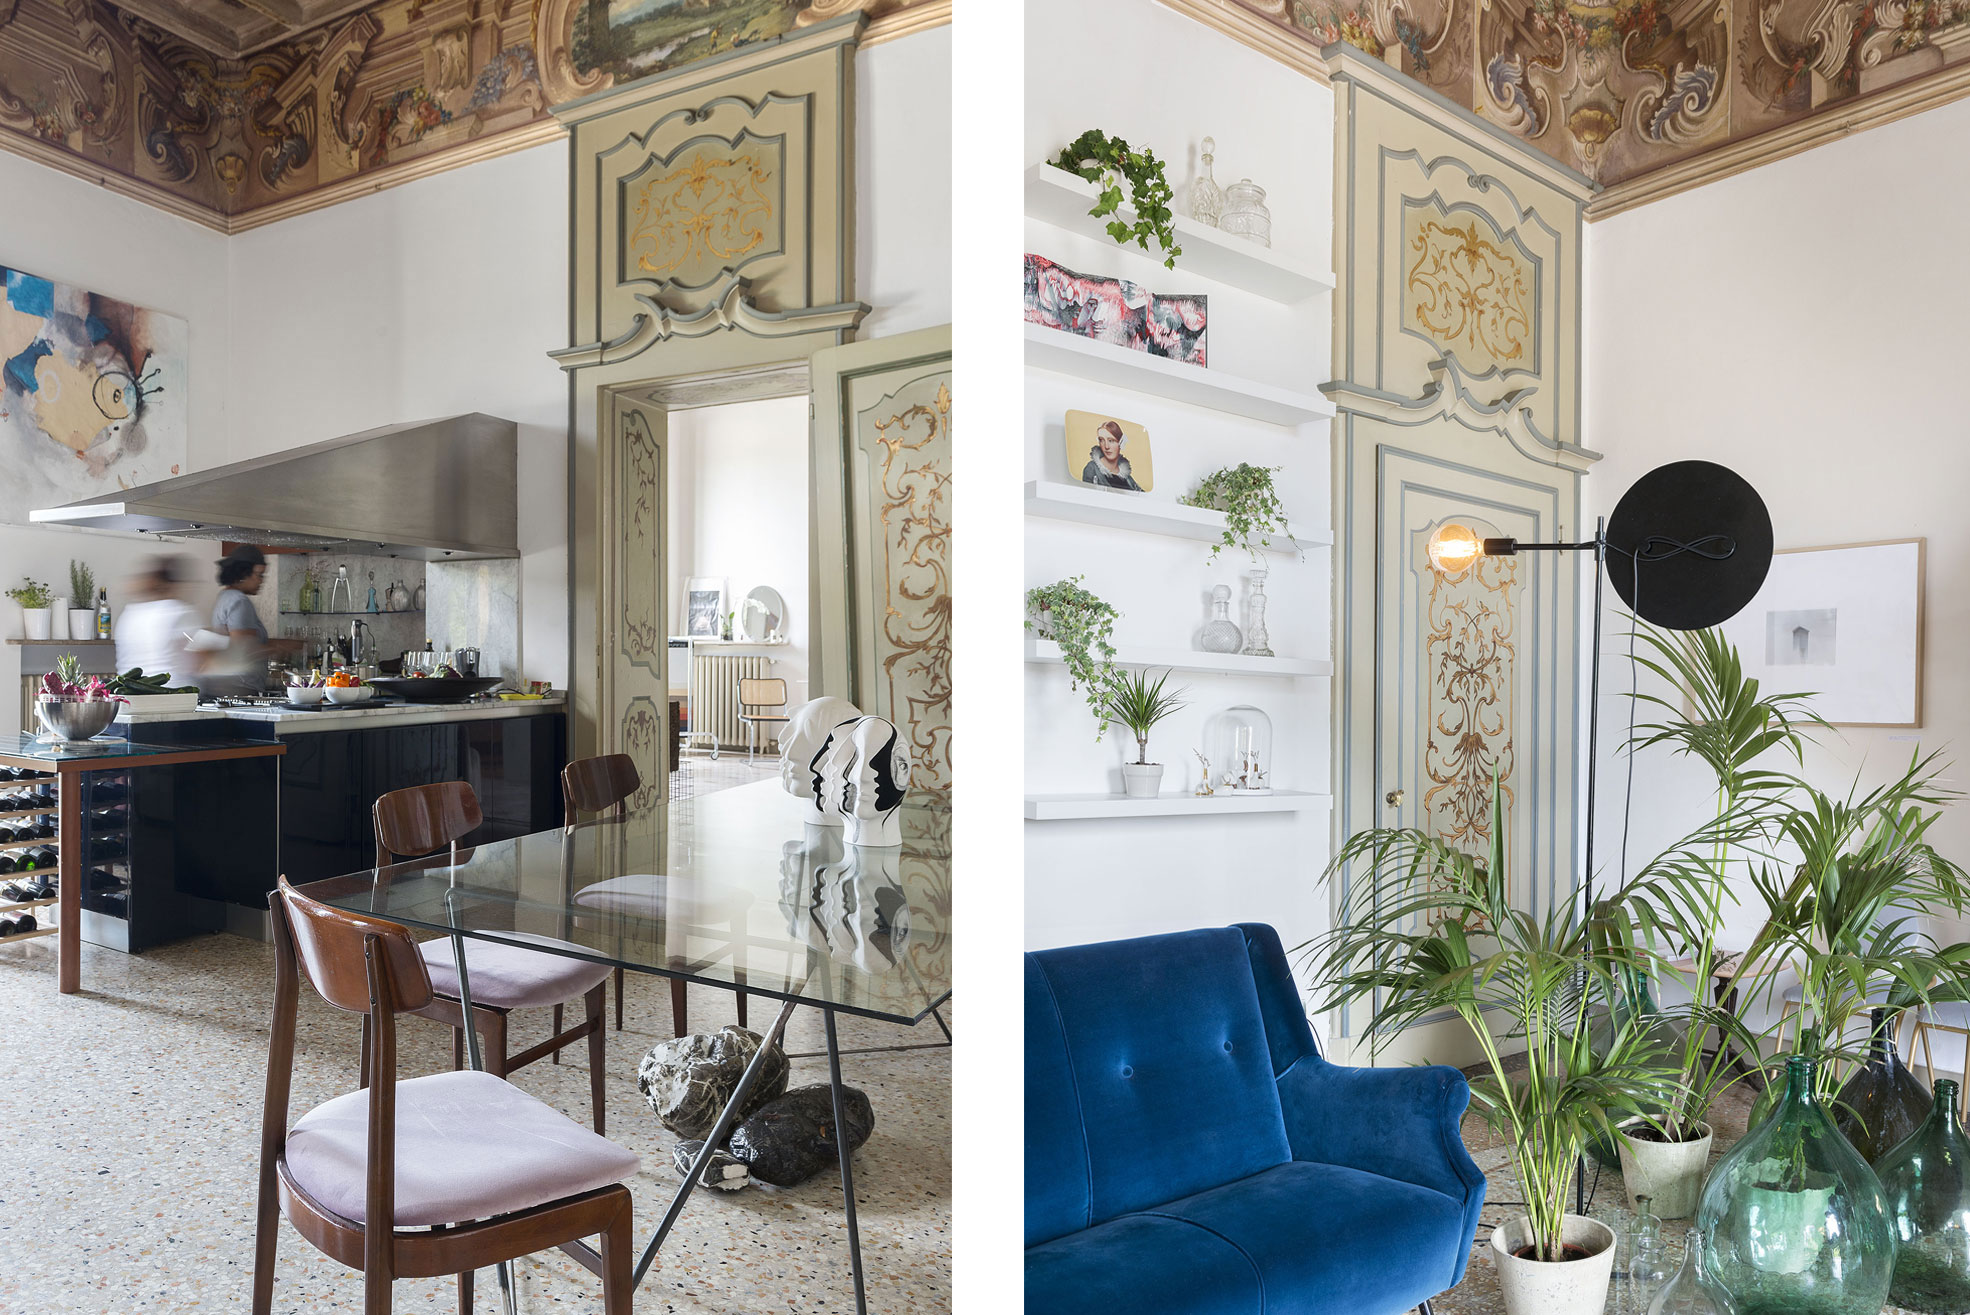 Kitchen of Casa Canvas, a gallery for young designers created